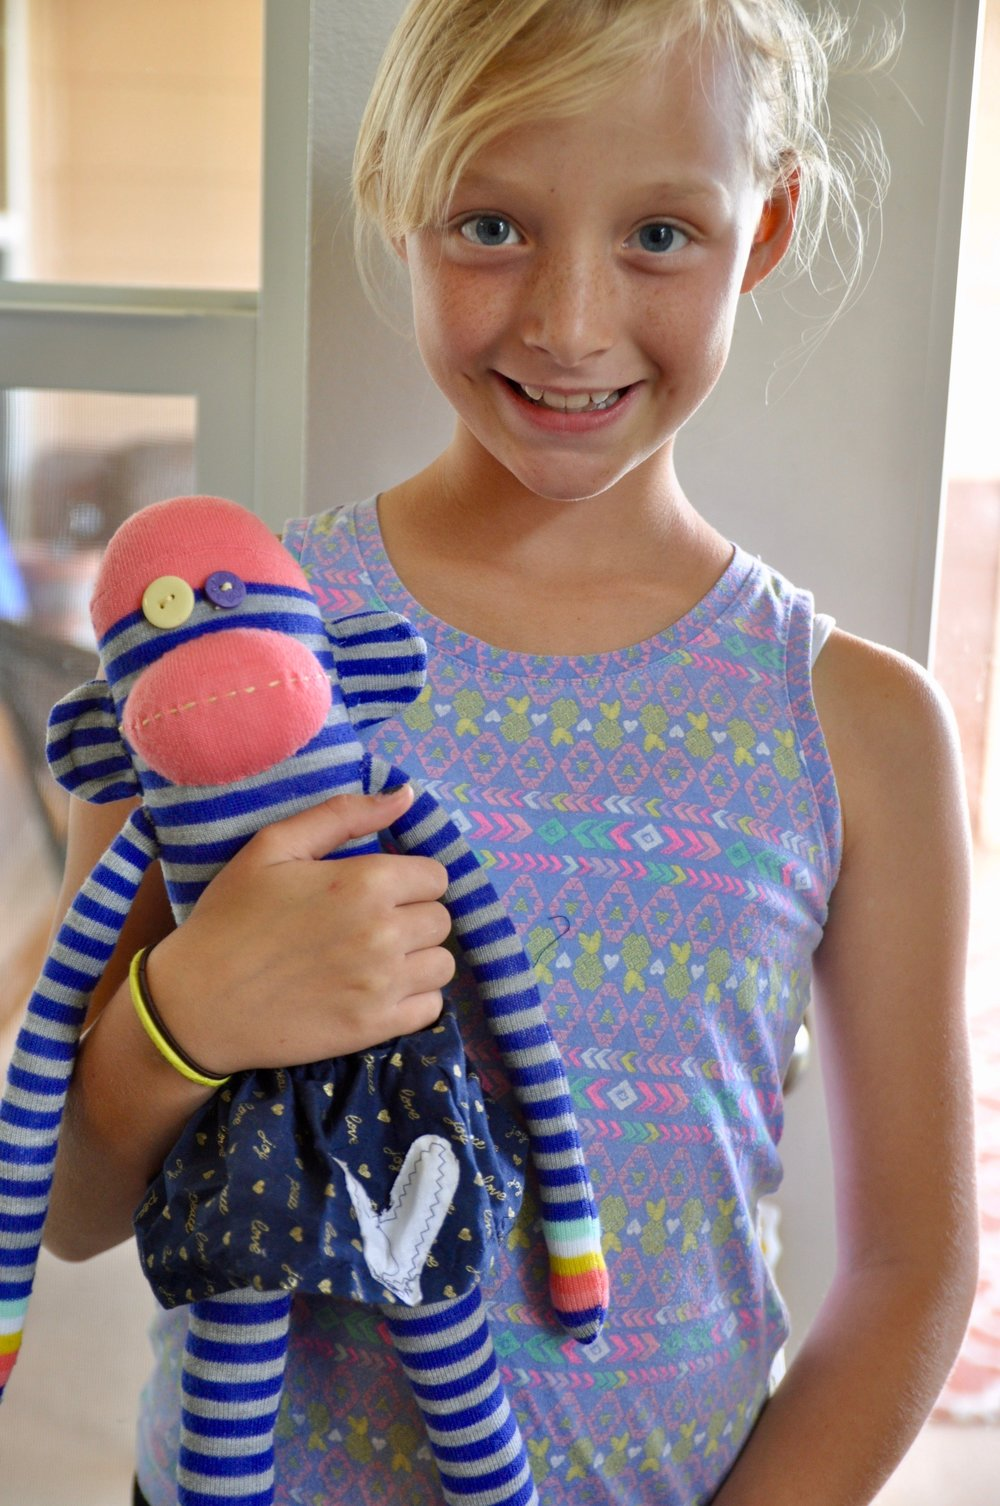 How to Make a Sock Monkey - Video Tutorial